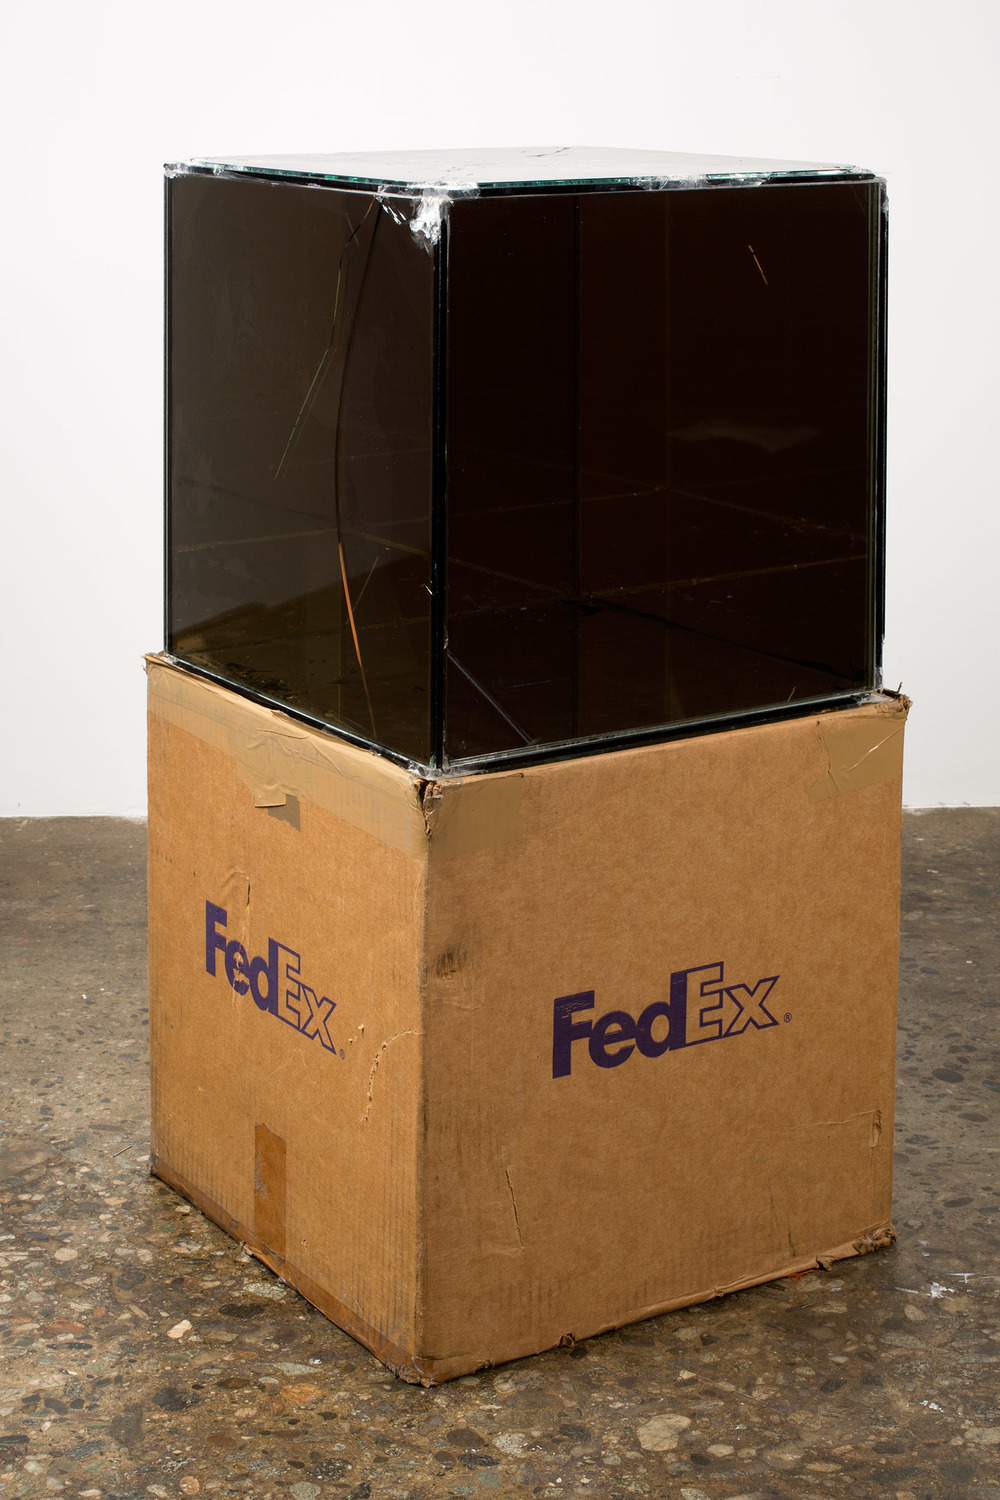 FedEx Kraft Box 2005 FEDEX 330504 10/05 SSCC, Priority Overnight, Los Angeles–Miami trk#865344981303, October 29–30, 2008, Priority Overnight, Miami–Ann Arbor trk#861049125148, March 3–4, 2009, Standard Overnight, Ann Arbor–Los Angeles trk#868274625716, July 9–10, 2009, Standard Overnight, Los Angeles–New York trk# 774901718297, November 4–5, 2015, Standard Overnight, New York–Los Angeles trk#775241156204, December 21–22, 2015    2008–   Laminated Mirropane, FedEx shipping box, accrued FedEx shipping and tracking labels, silicone, metal, tape  16 x 16 x 16 inches   FedEx Glass Works, 2007–